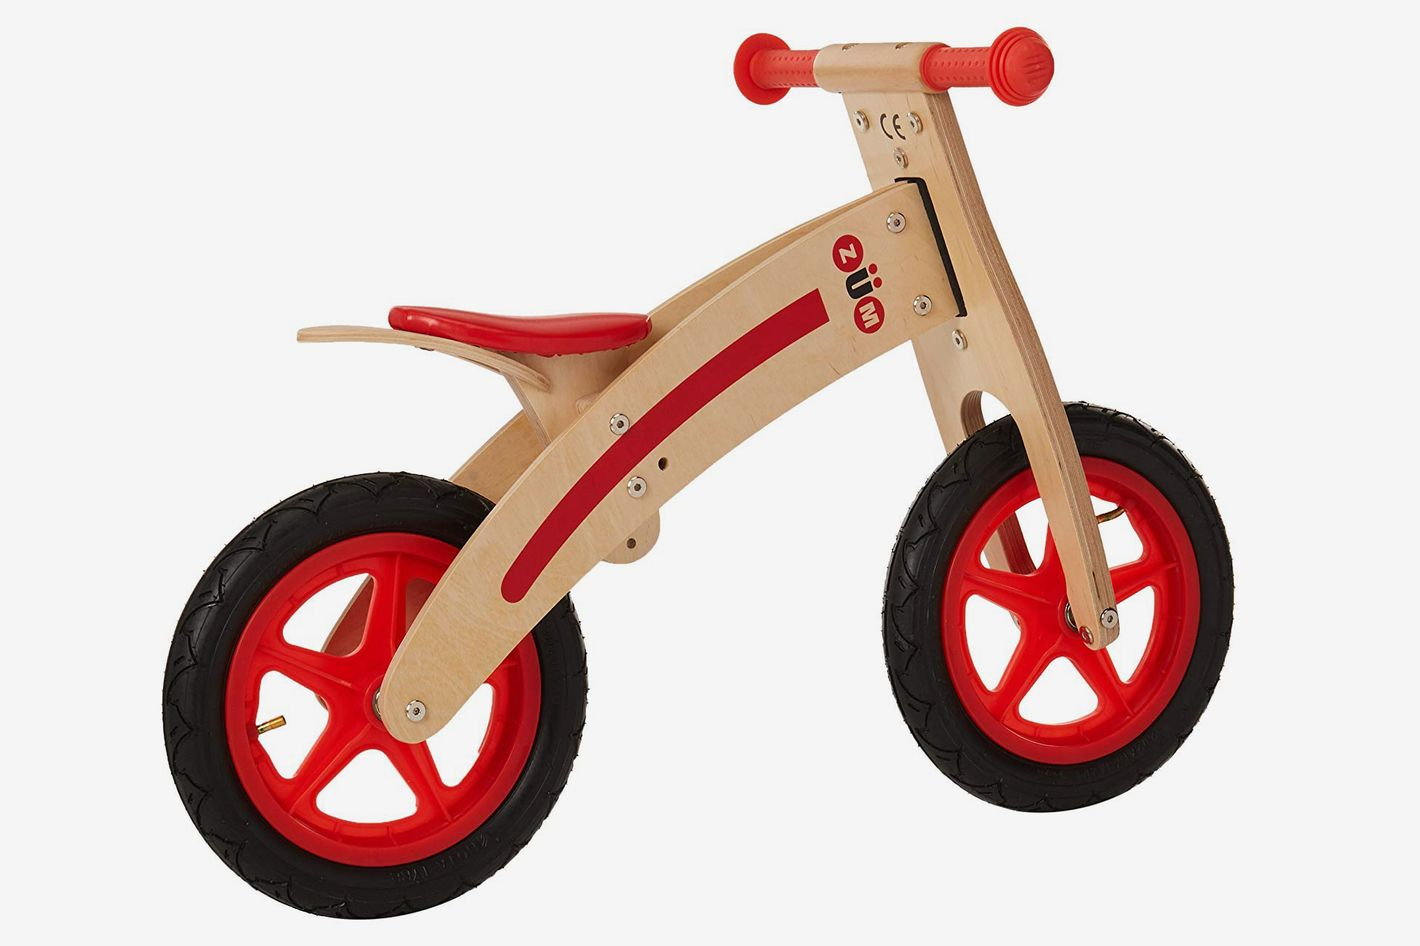 ZM CX Wooden Balance Bike